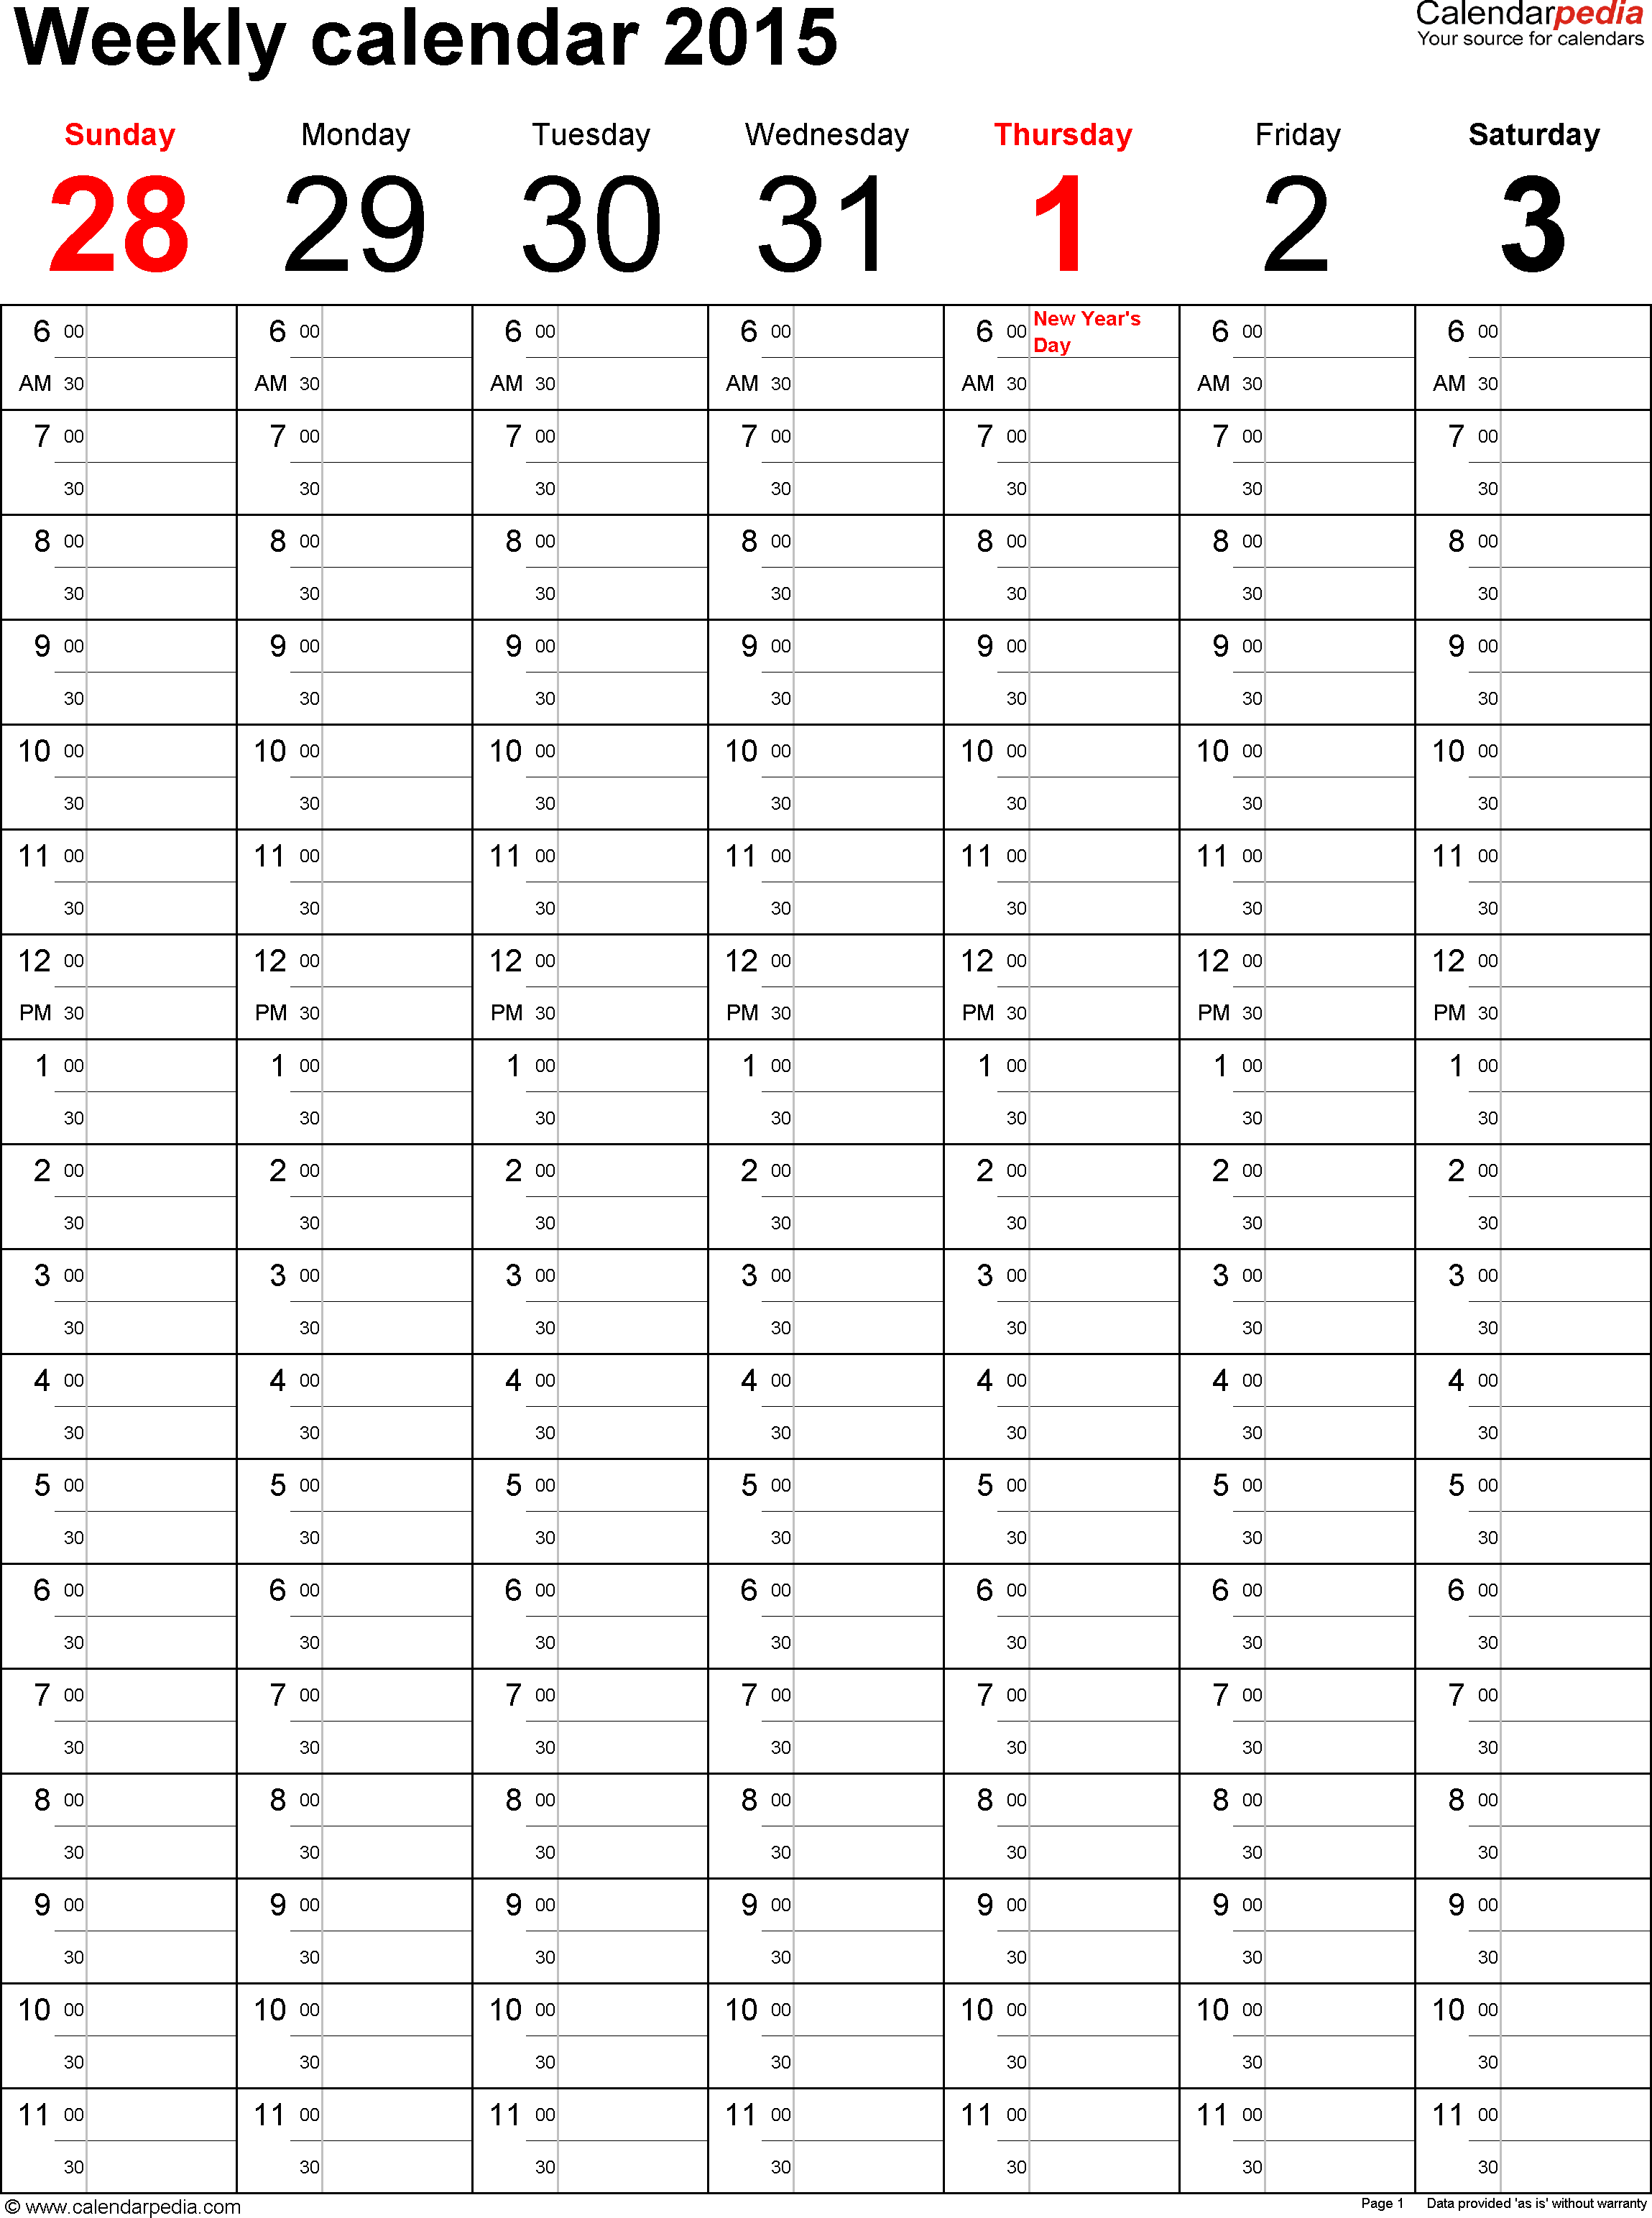 Weekly calendar 2015 for Excel - 5 free printable templates